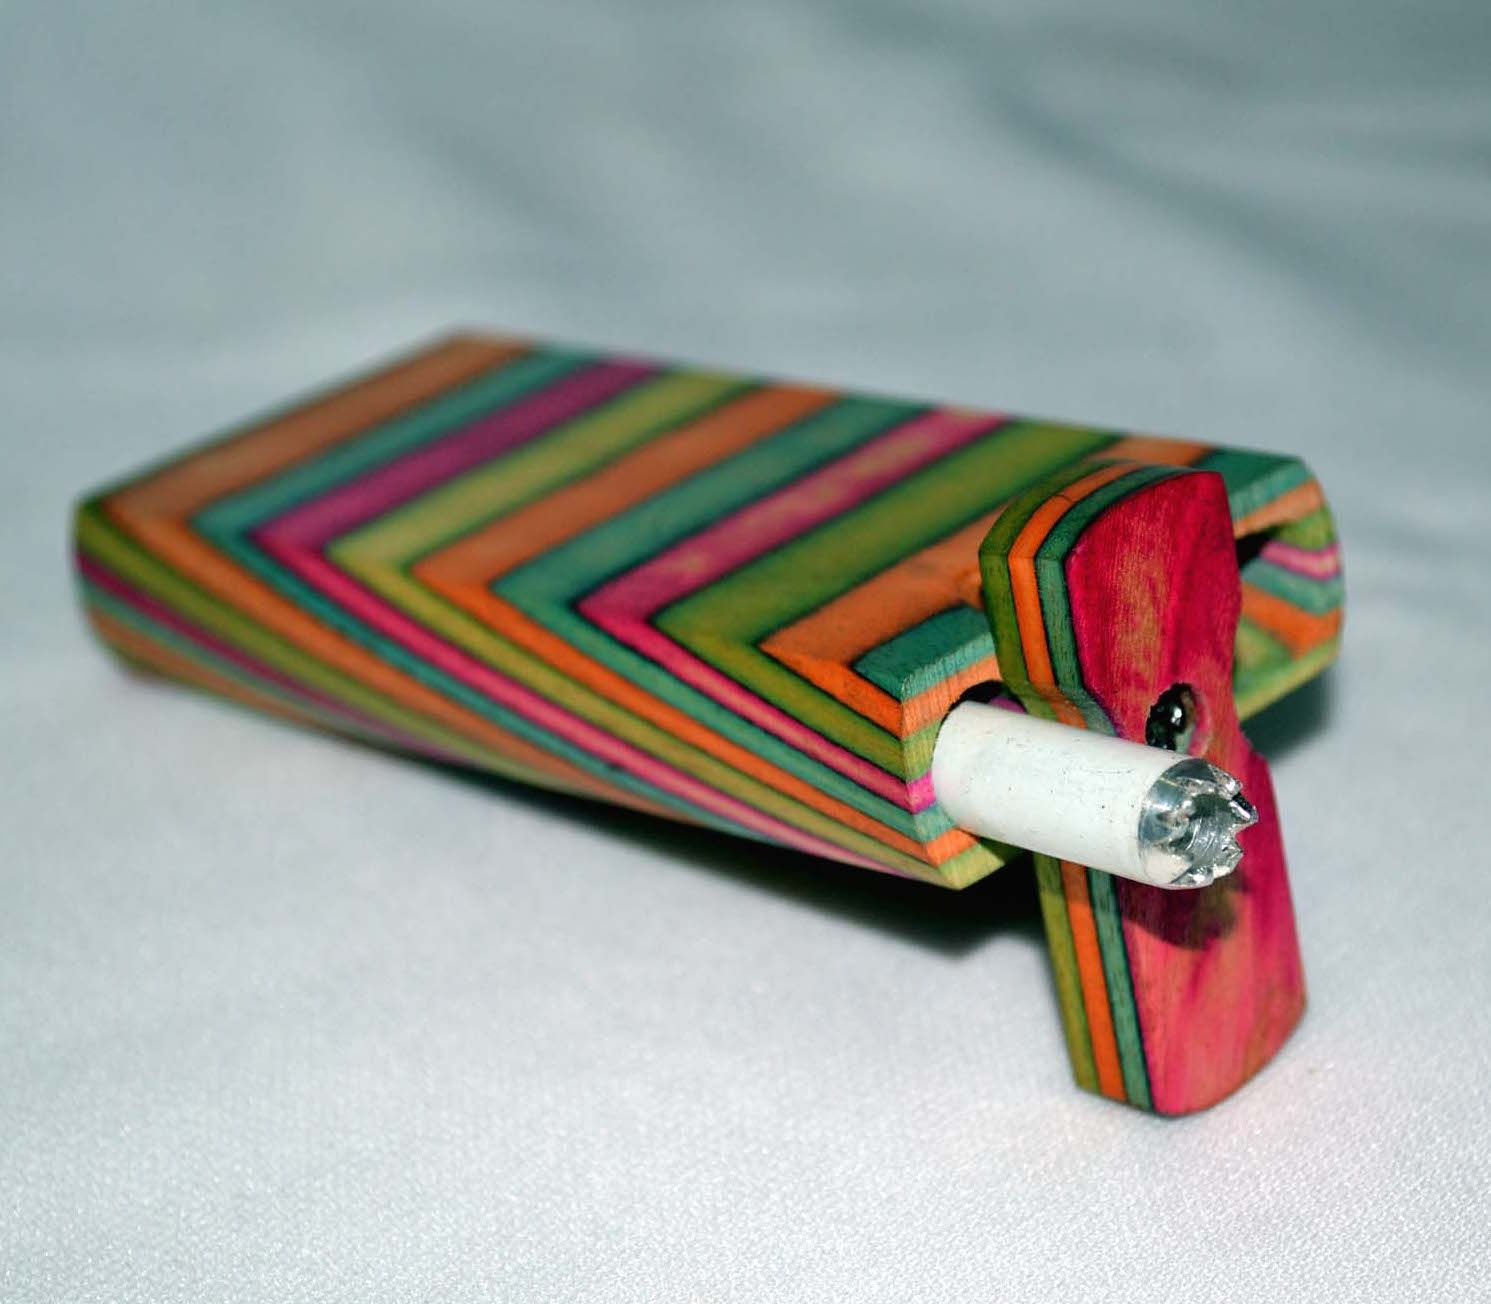 MULTI COLOR WOOD DUG OUT WITH HITTER PIPE